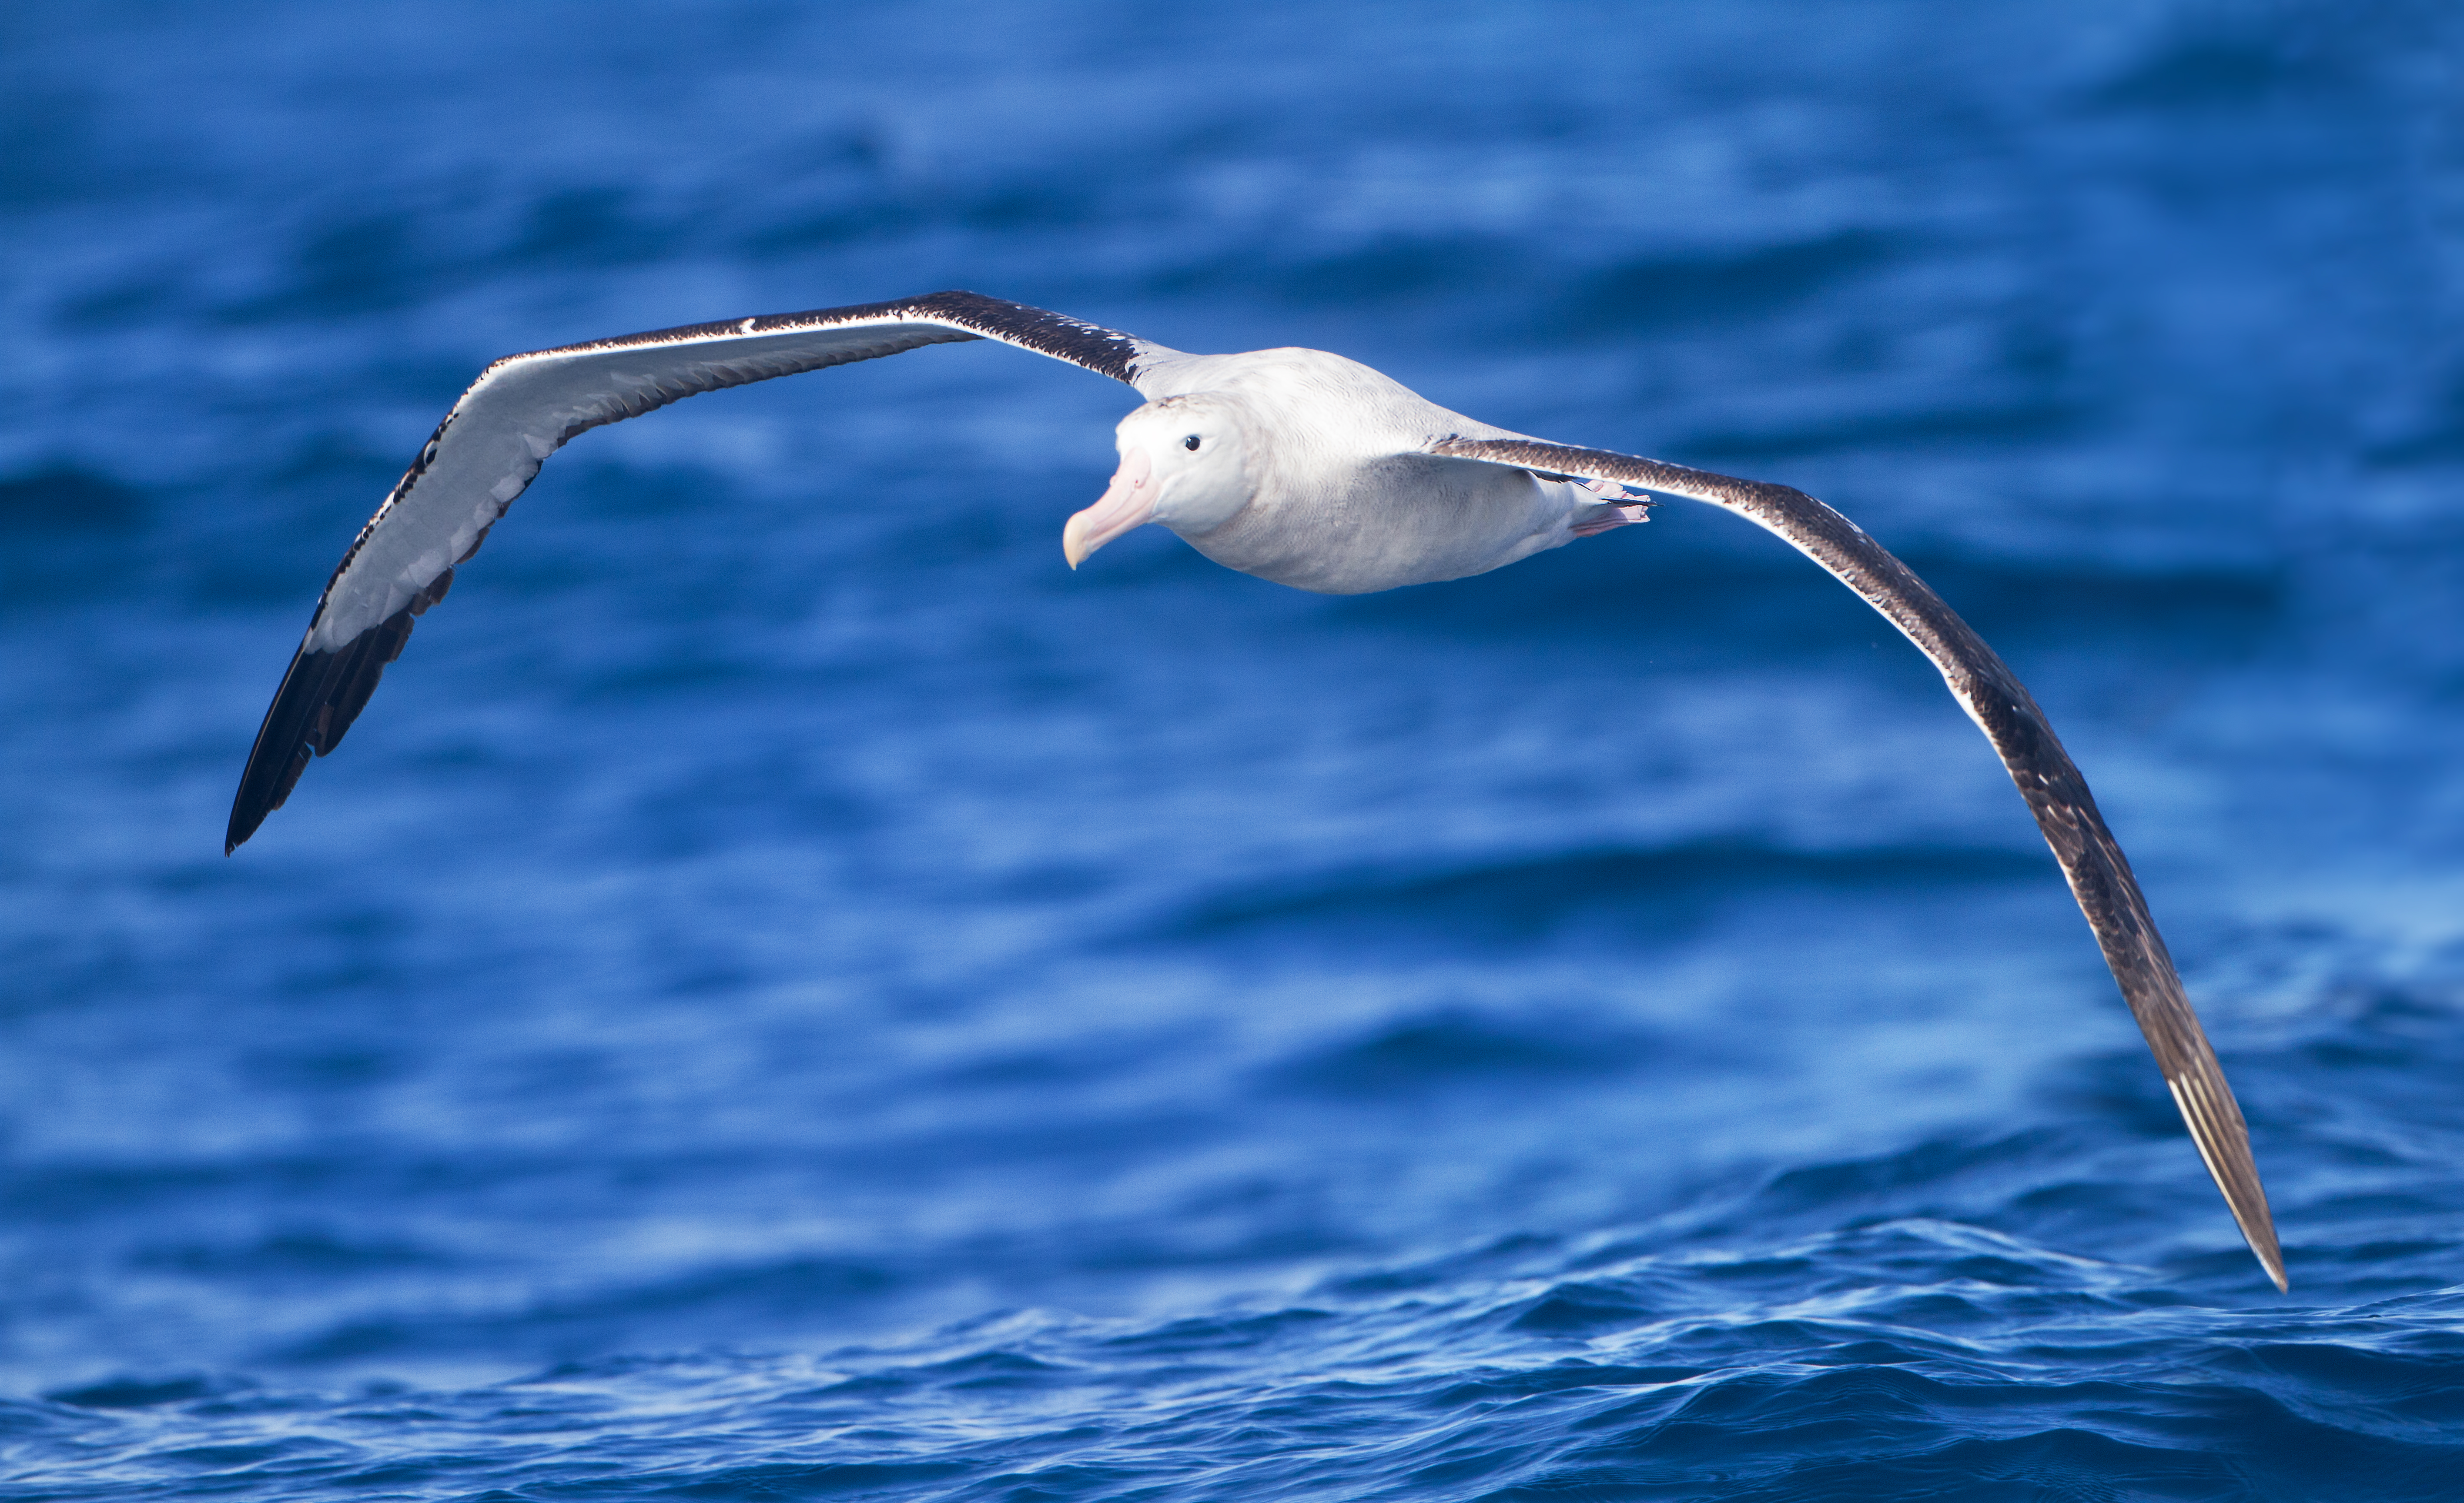 Albatross flying over the surface of bright blue water